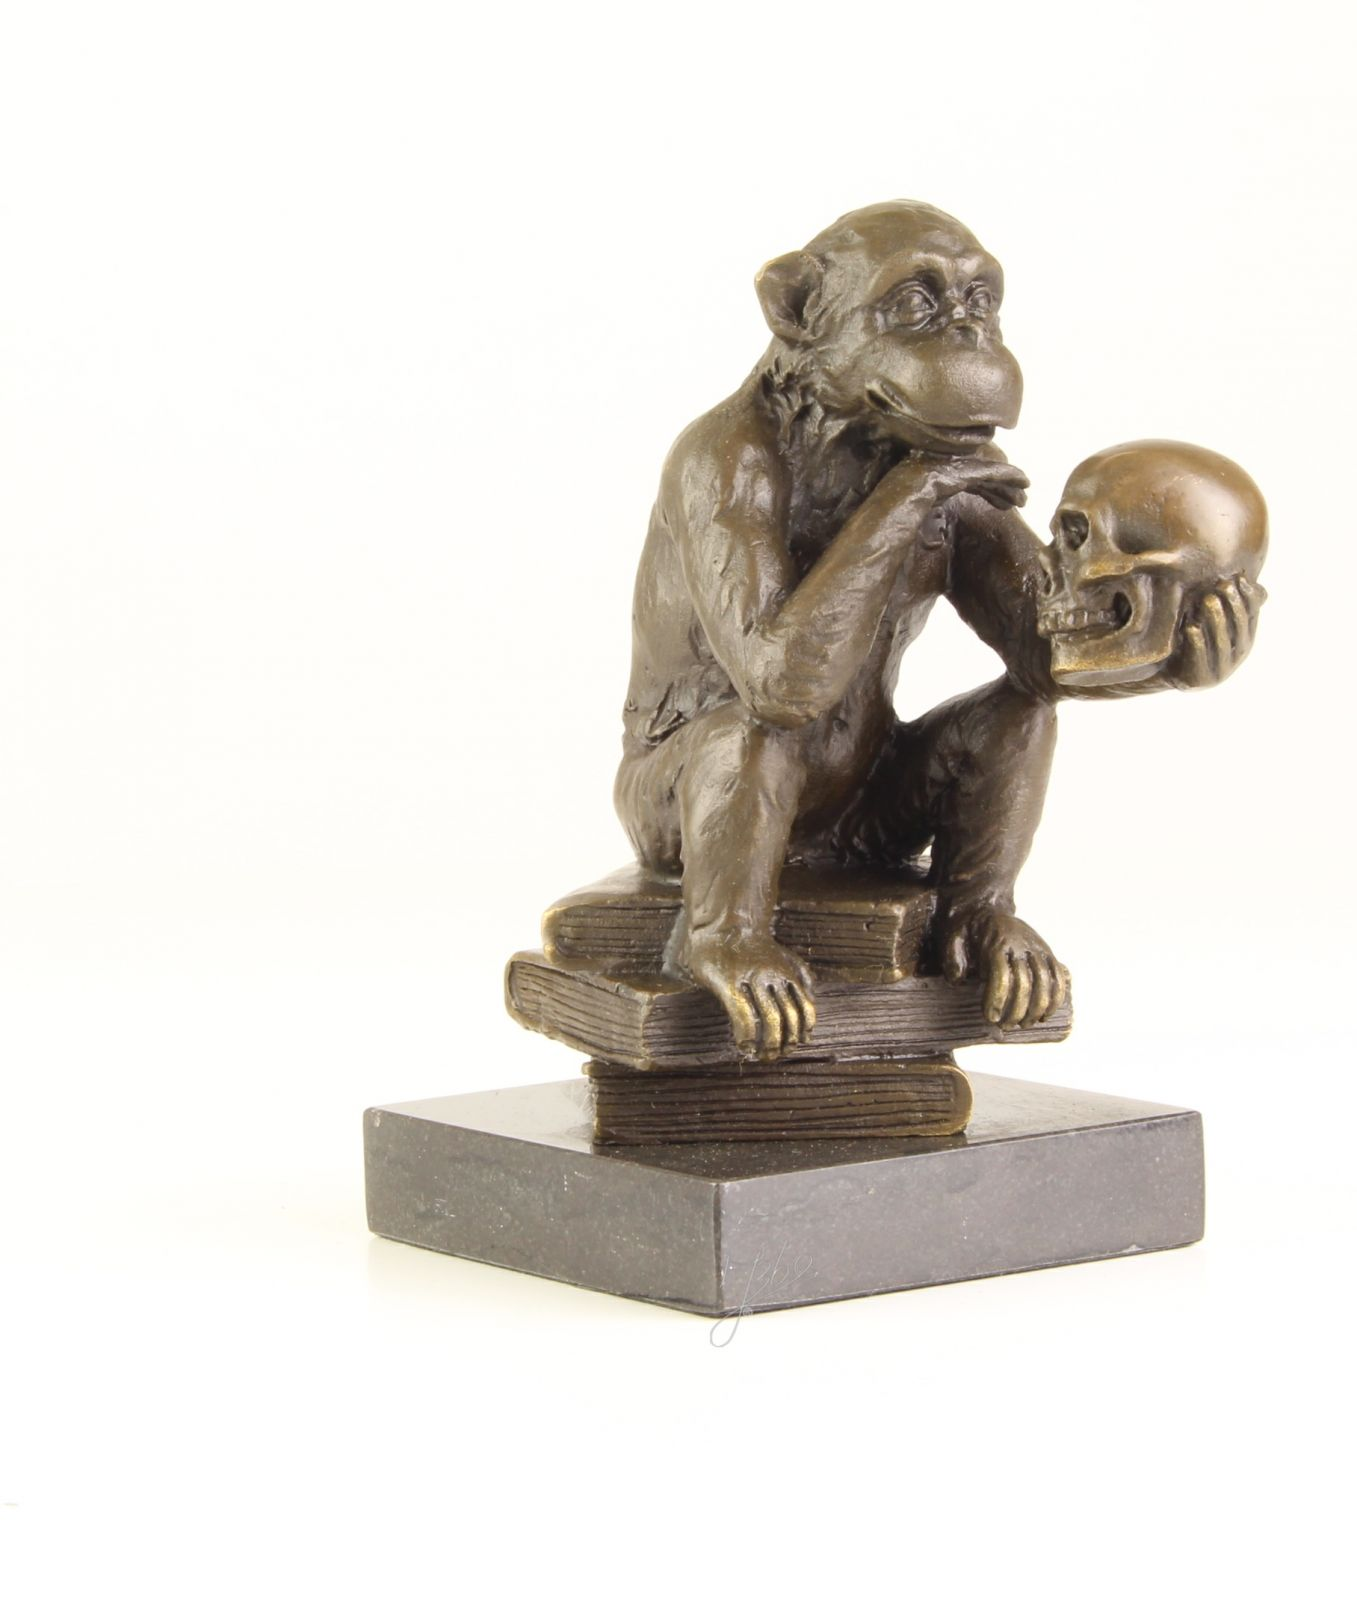 A BRONZE SCULPTURE OF THE APE WITH SKULL BrokInCZ